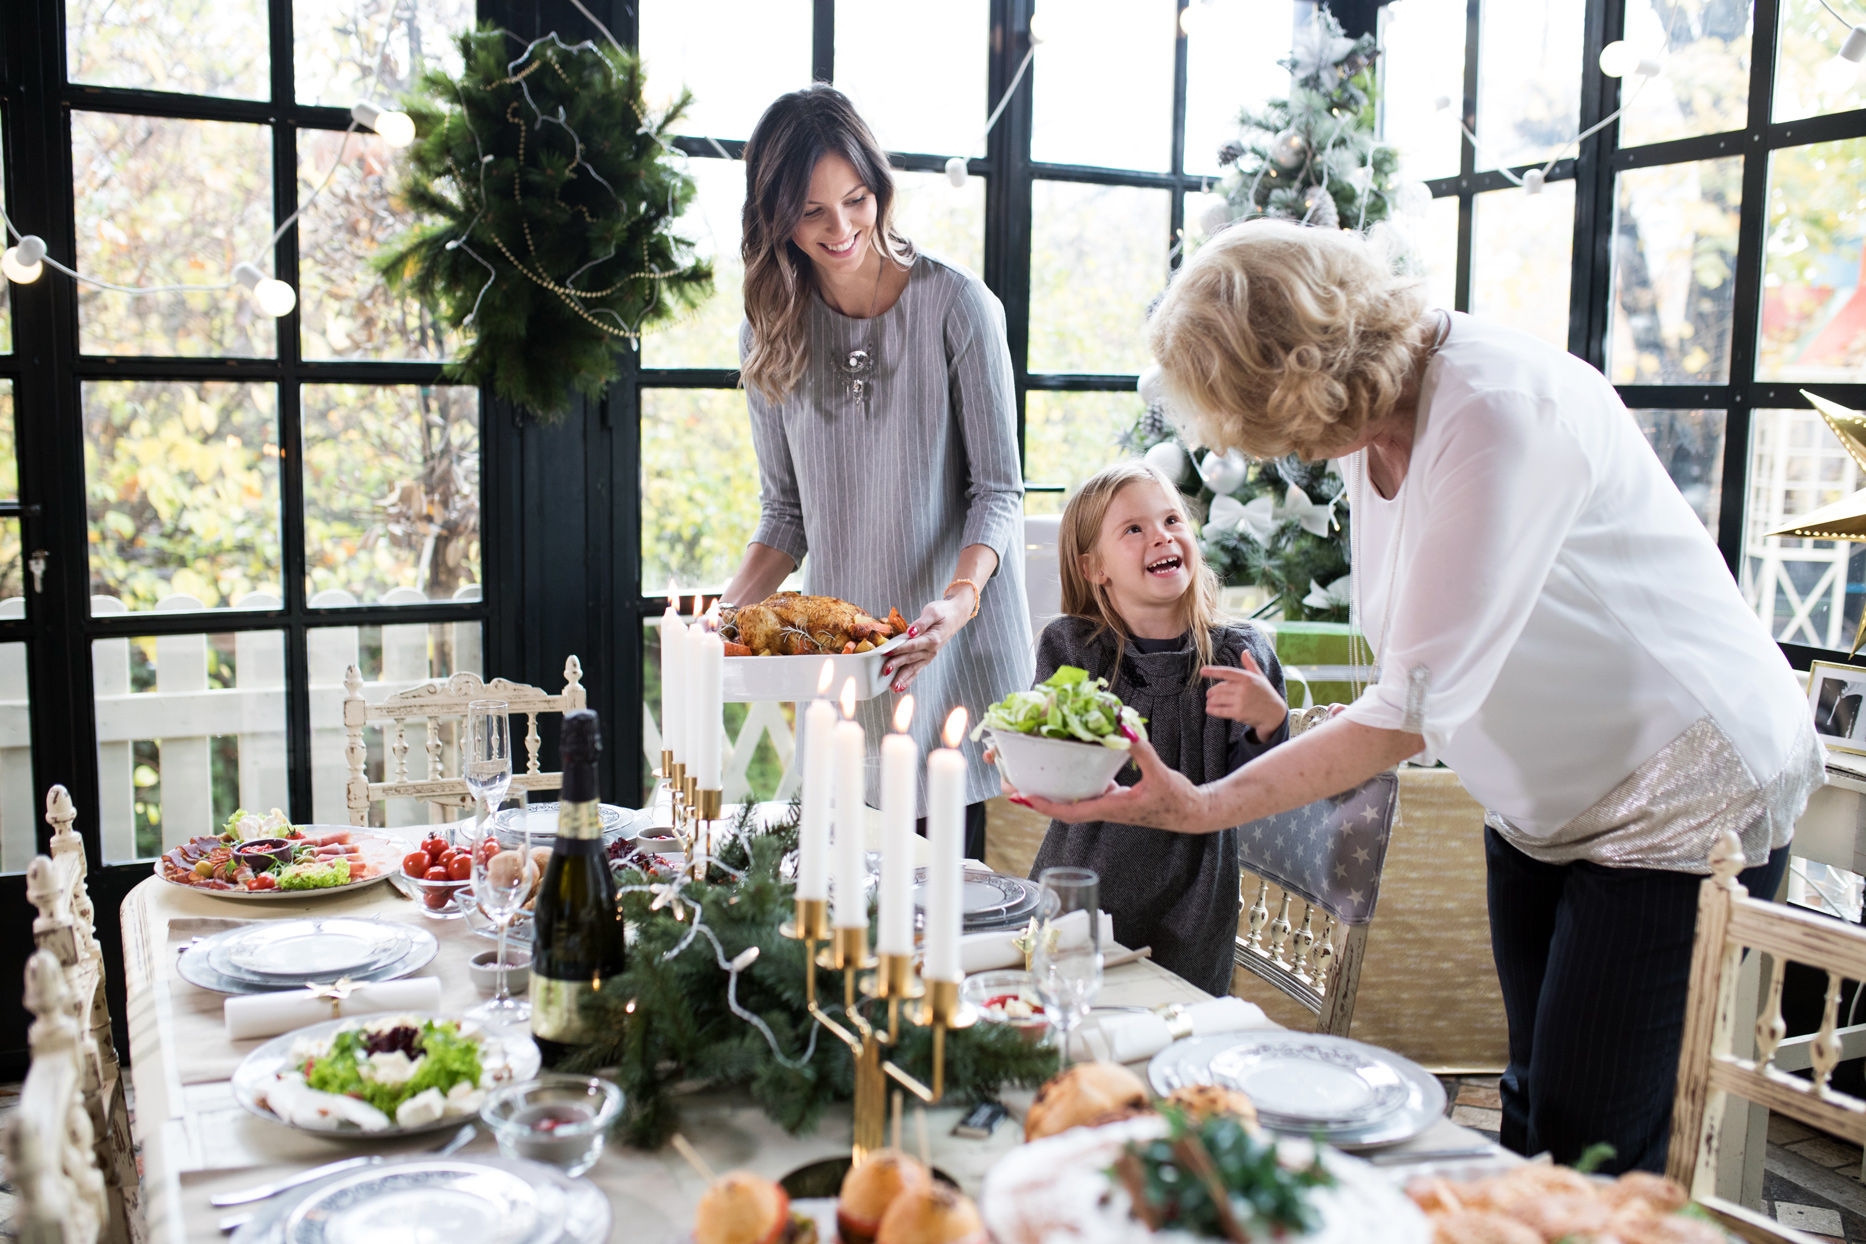 family placing food table with holiday decor